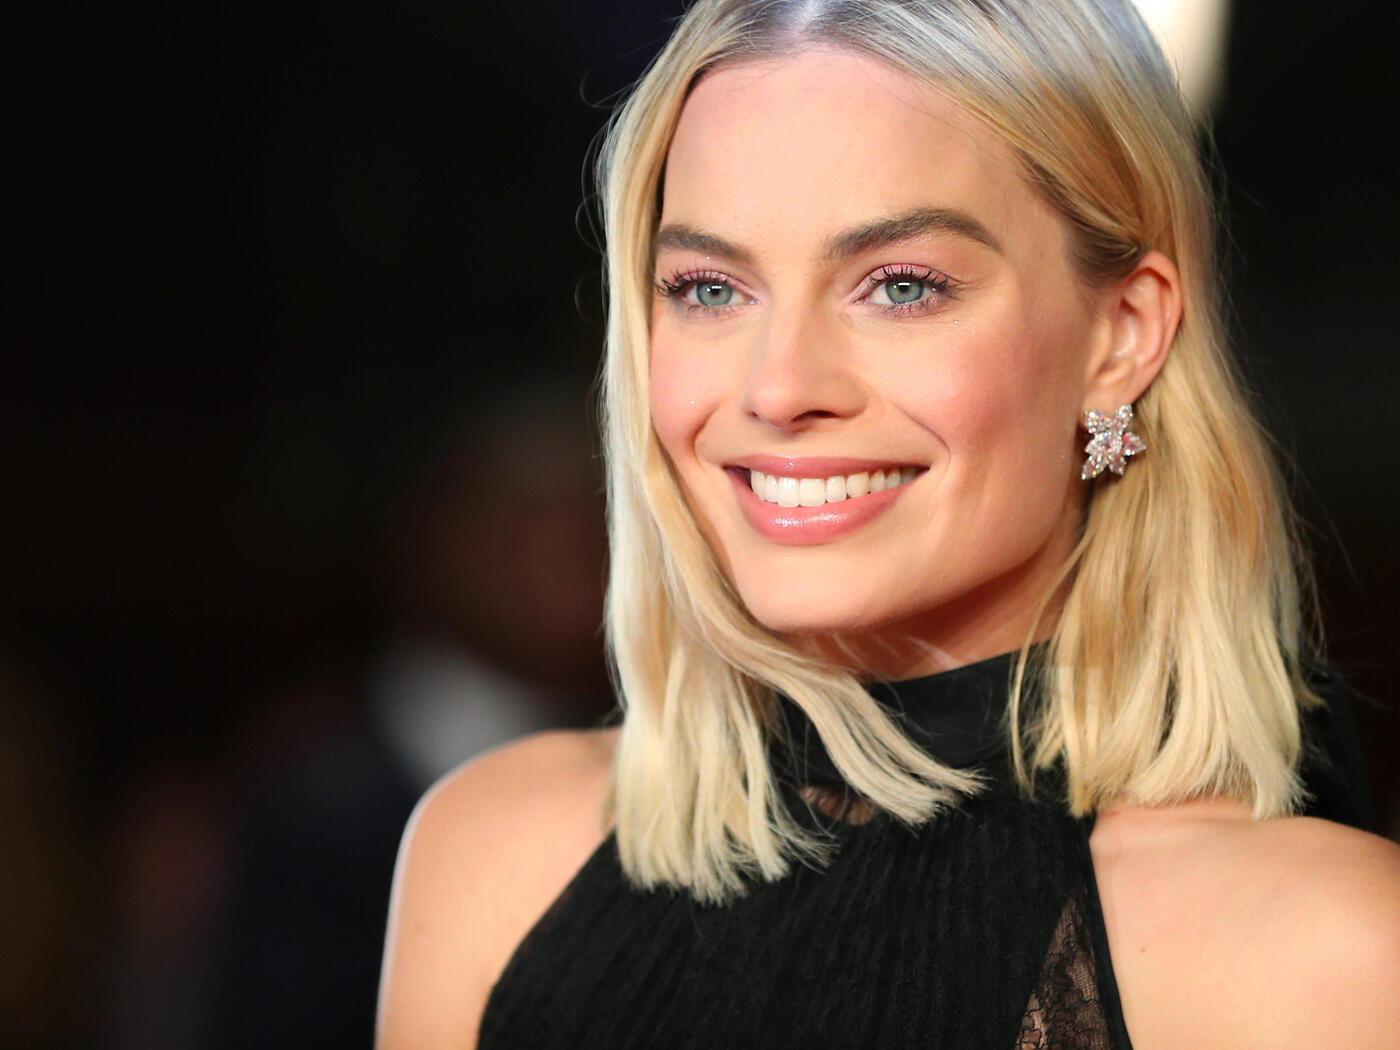 margot-robbie-smiling-2018-re.jpg